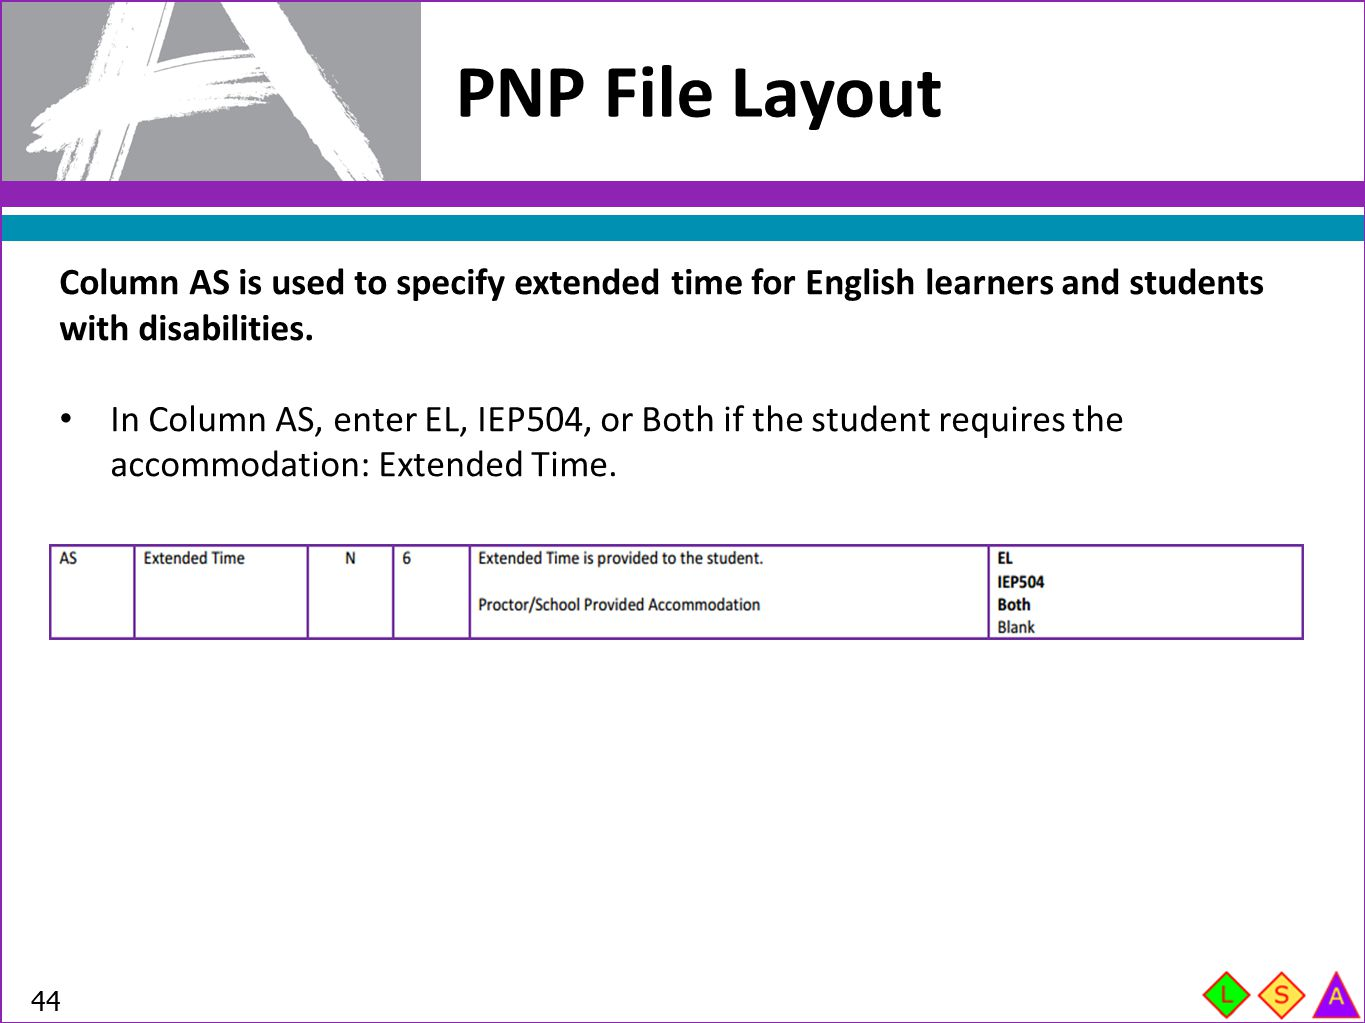 PNP File Layout 44 Column AS is used to specify extended time for English learners and students with disabilities. In Column AS, enter EL, IEP504, or